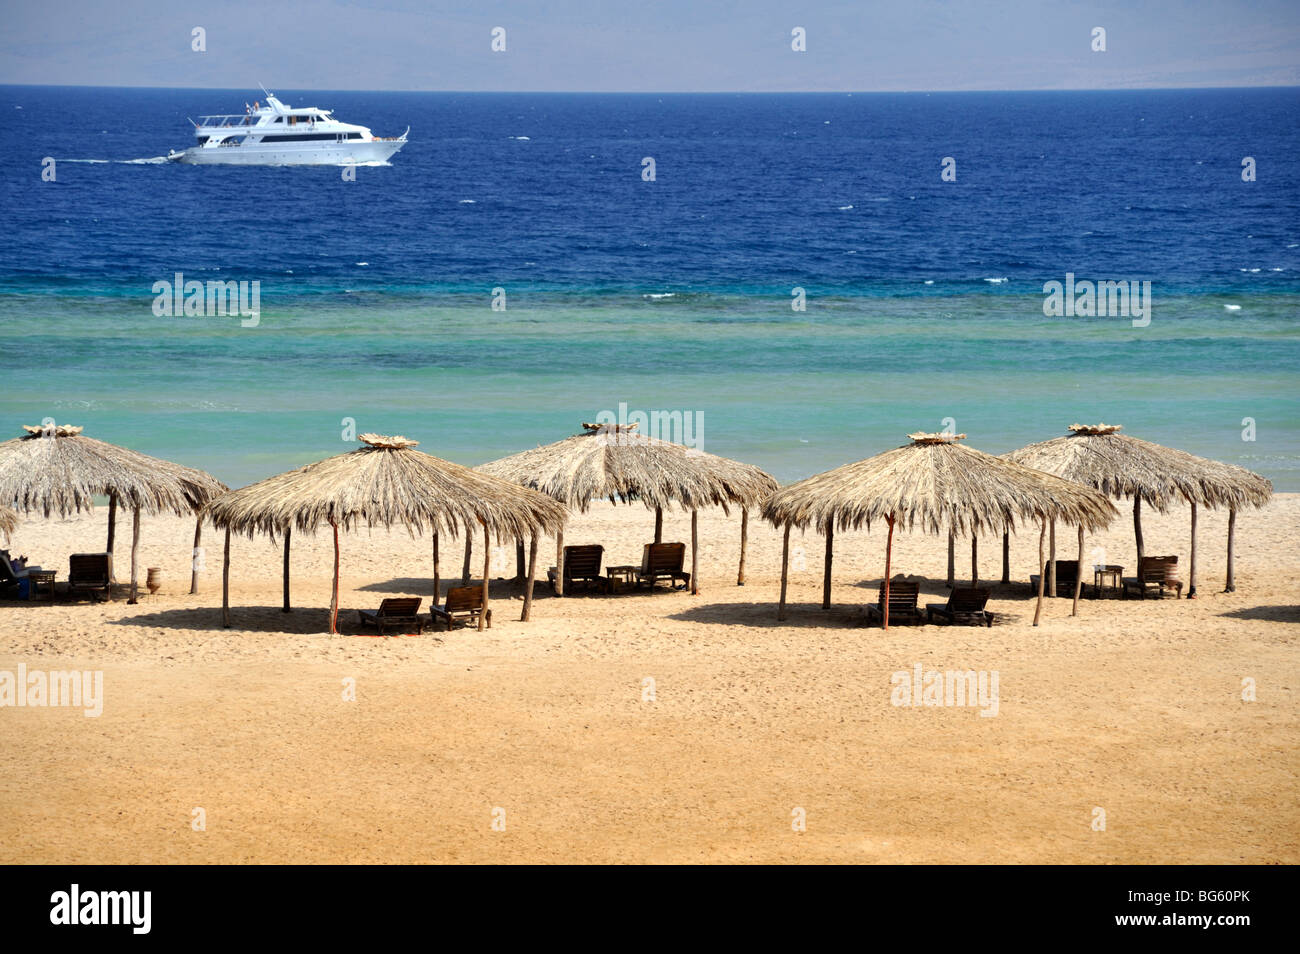 Beach, sea, thatched sunshades Nuweiba, 'Red Sea', Egypt - Stock Image